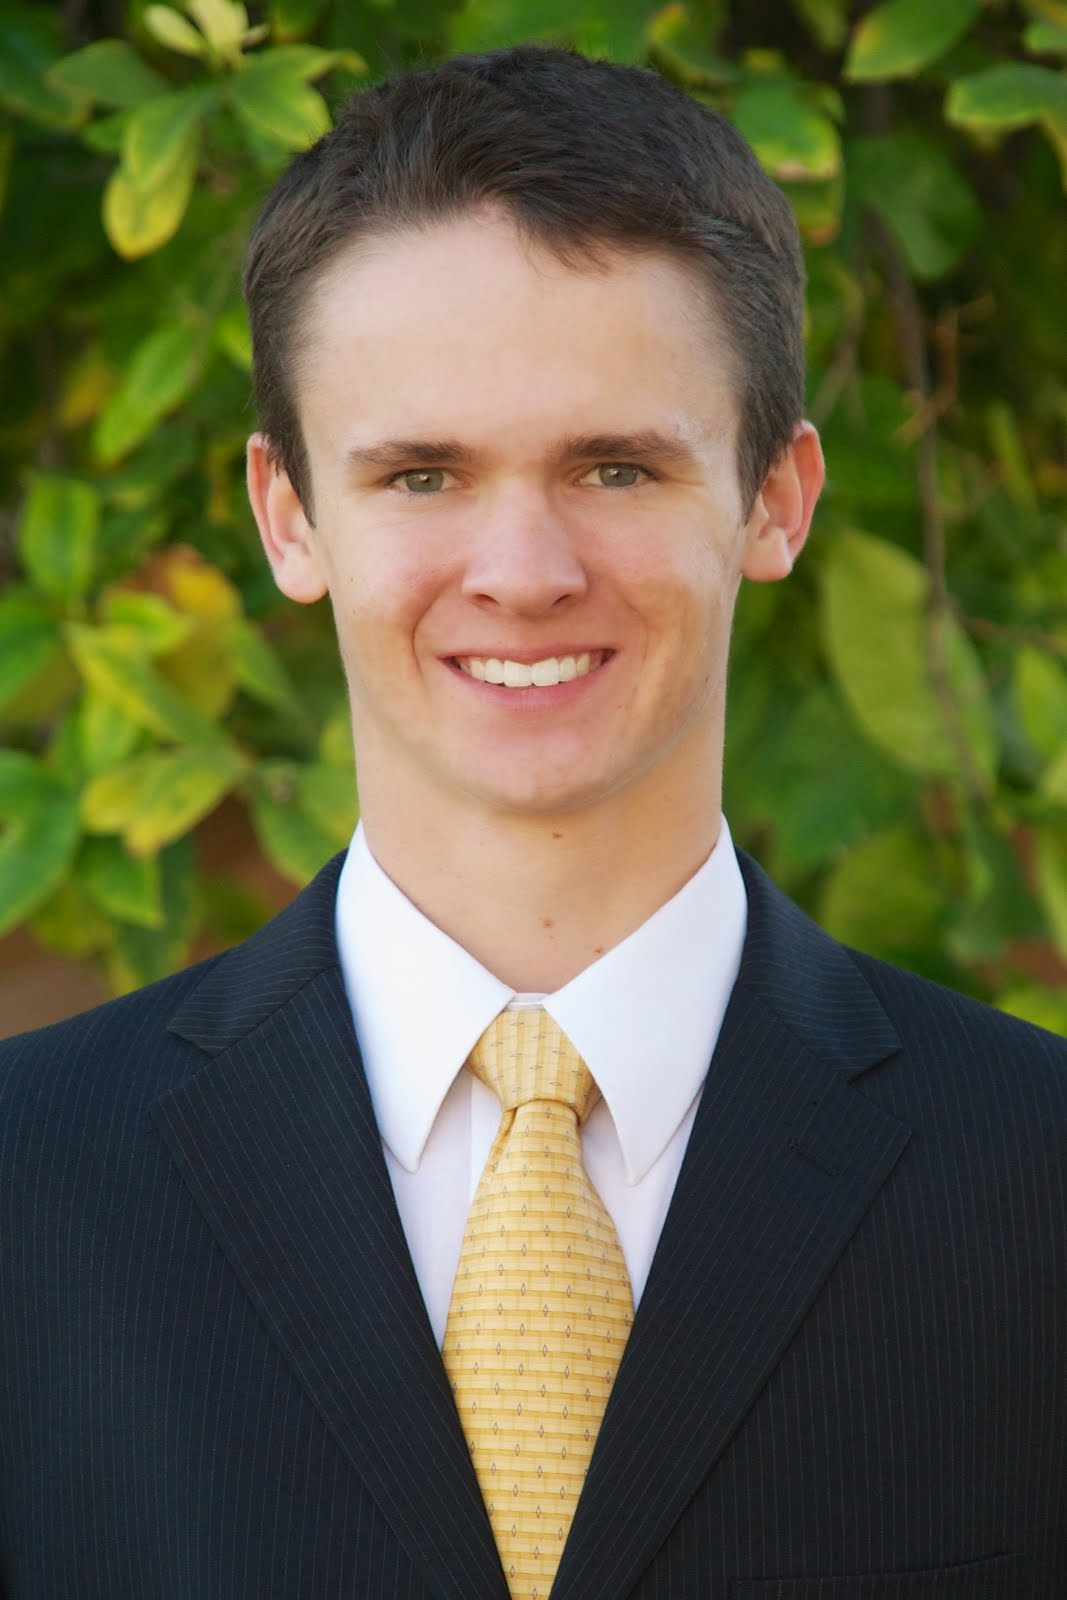 ELDER JEFFERSON K URRY